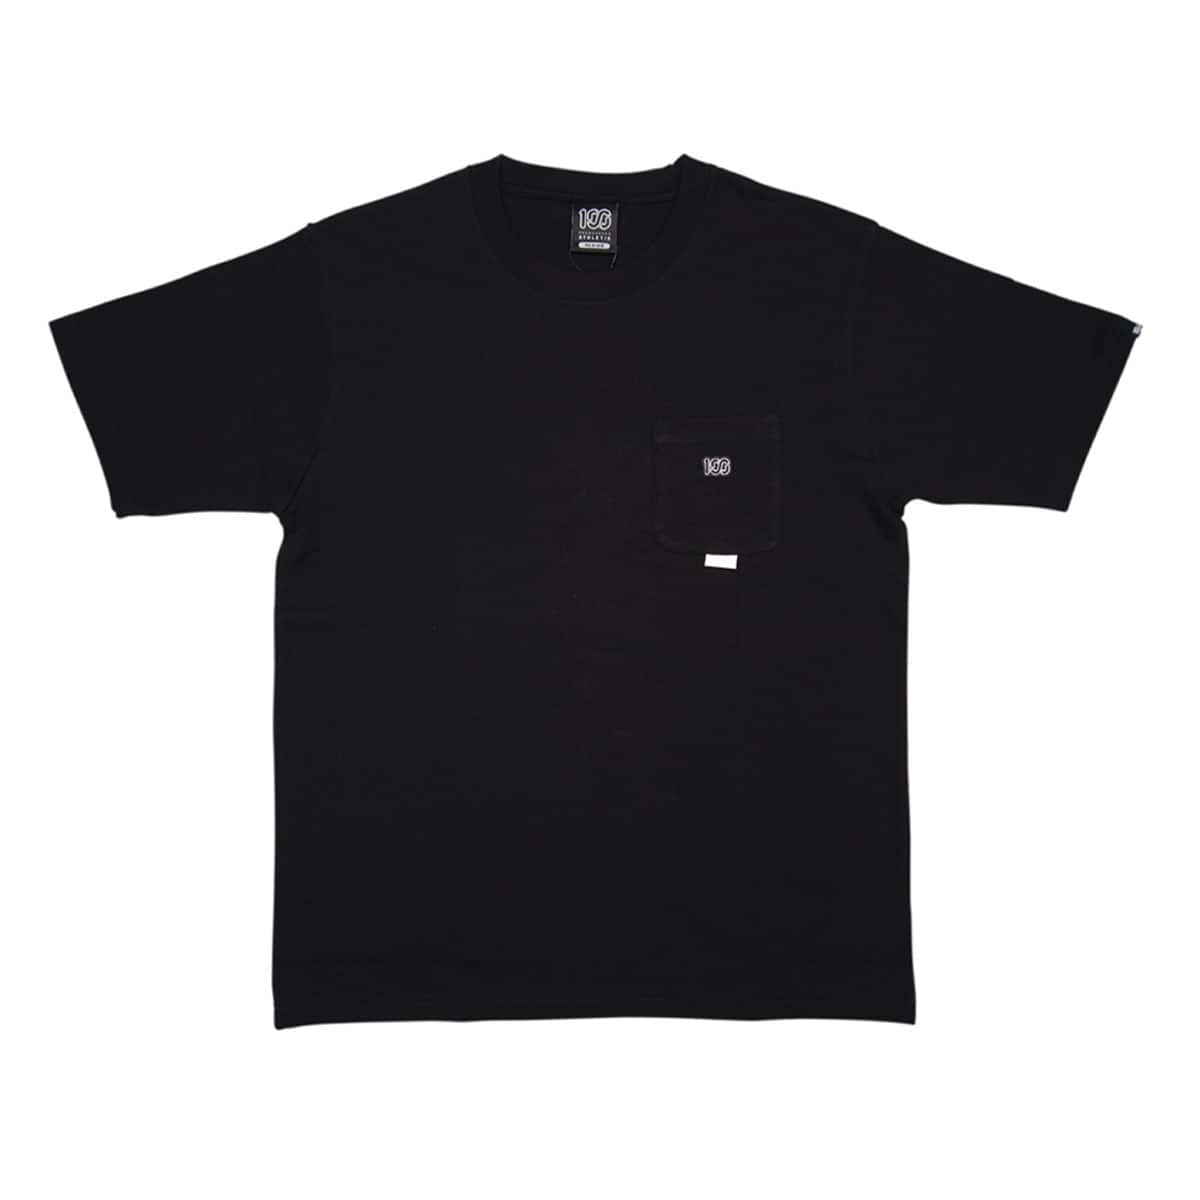 100A THICK JERSEY S/S TOP with pocket BLACK 20FA-I_photo_large